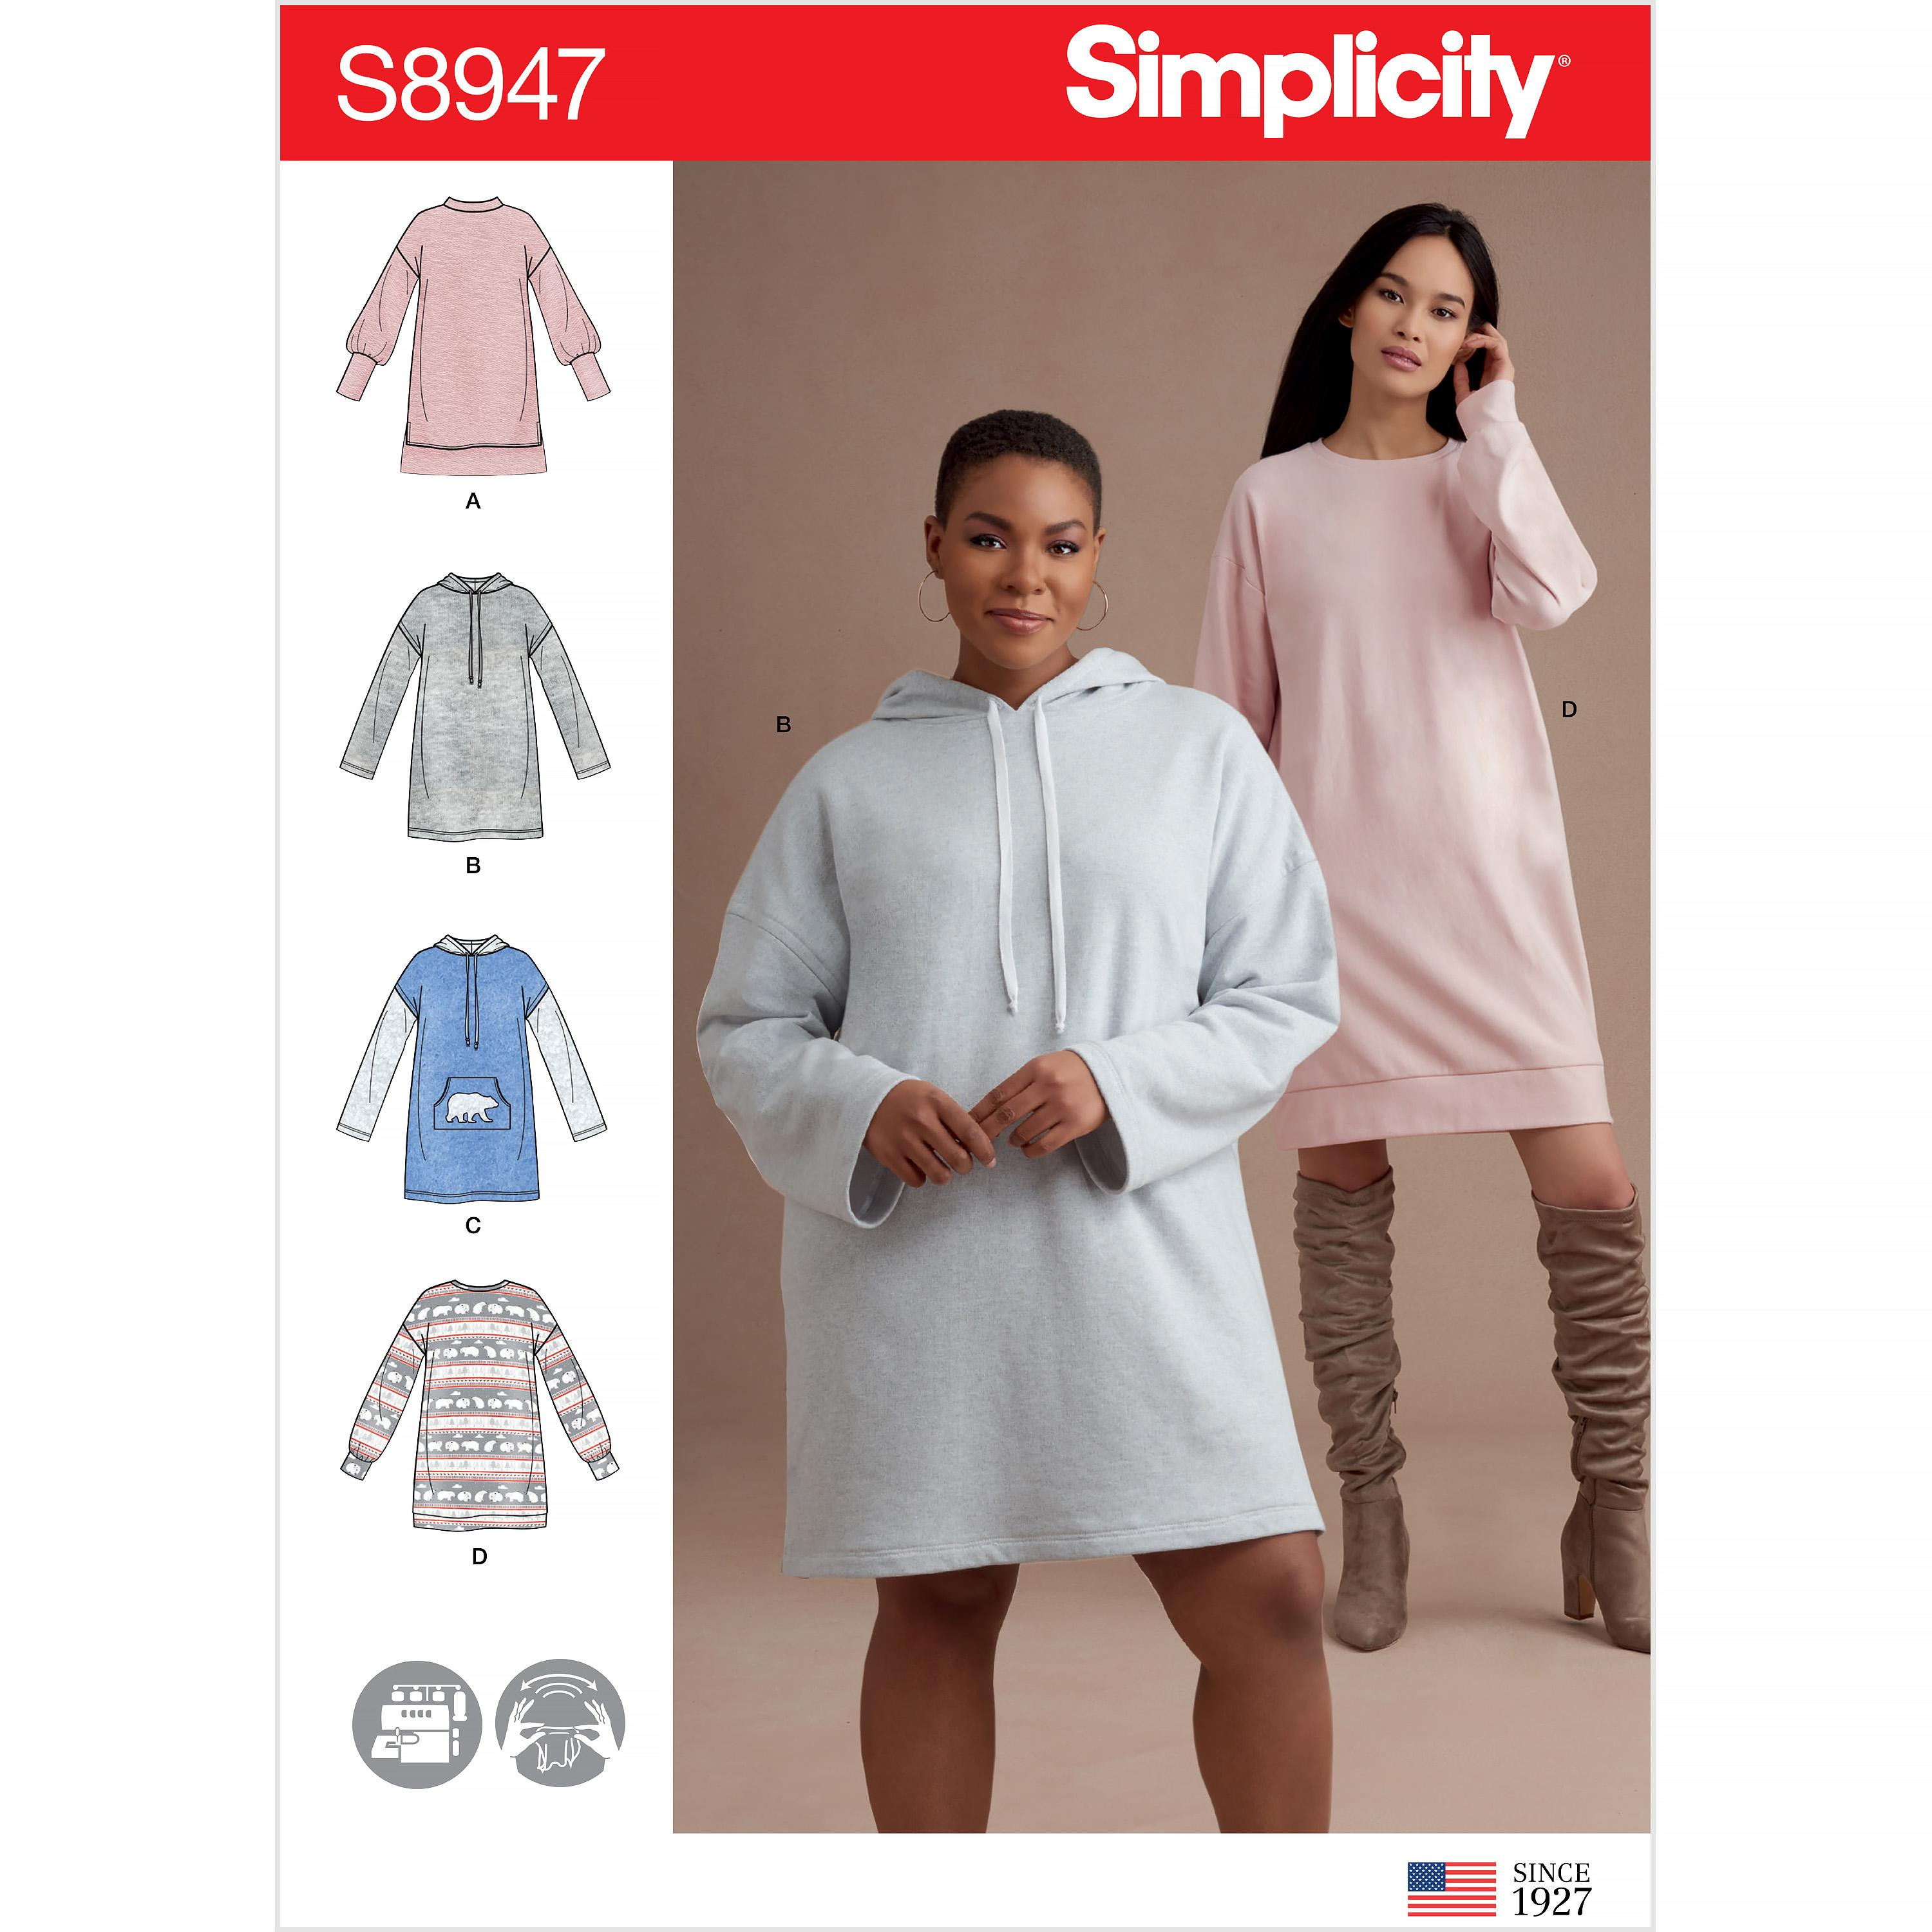 Simplicity S8947 Misses' Knit Sweatshirt Mini Dresses